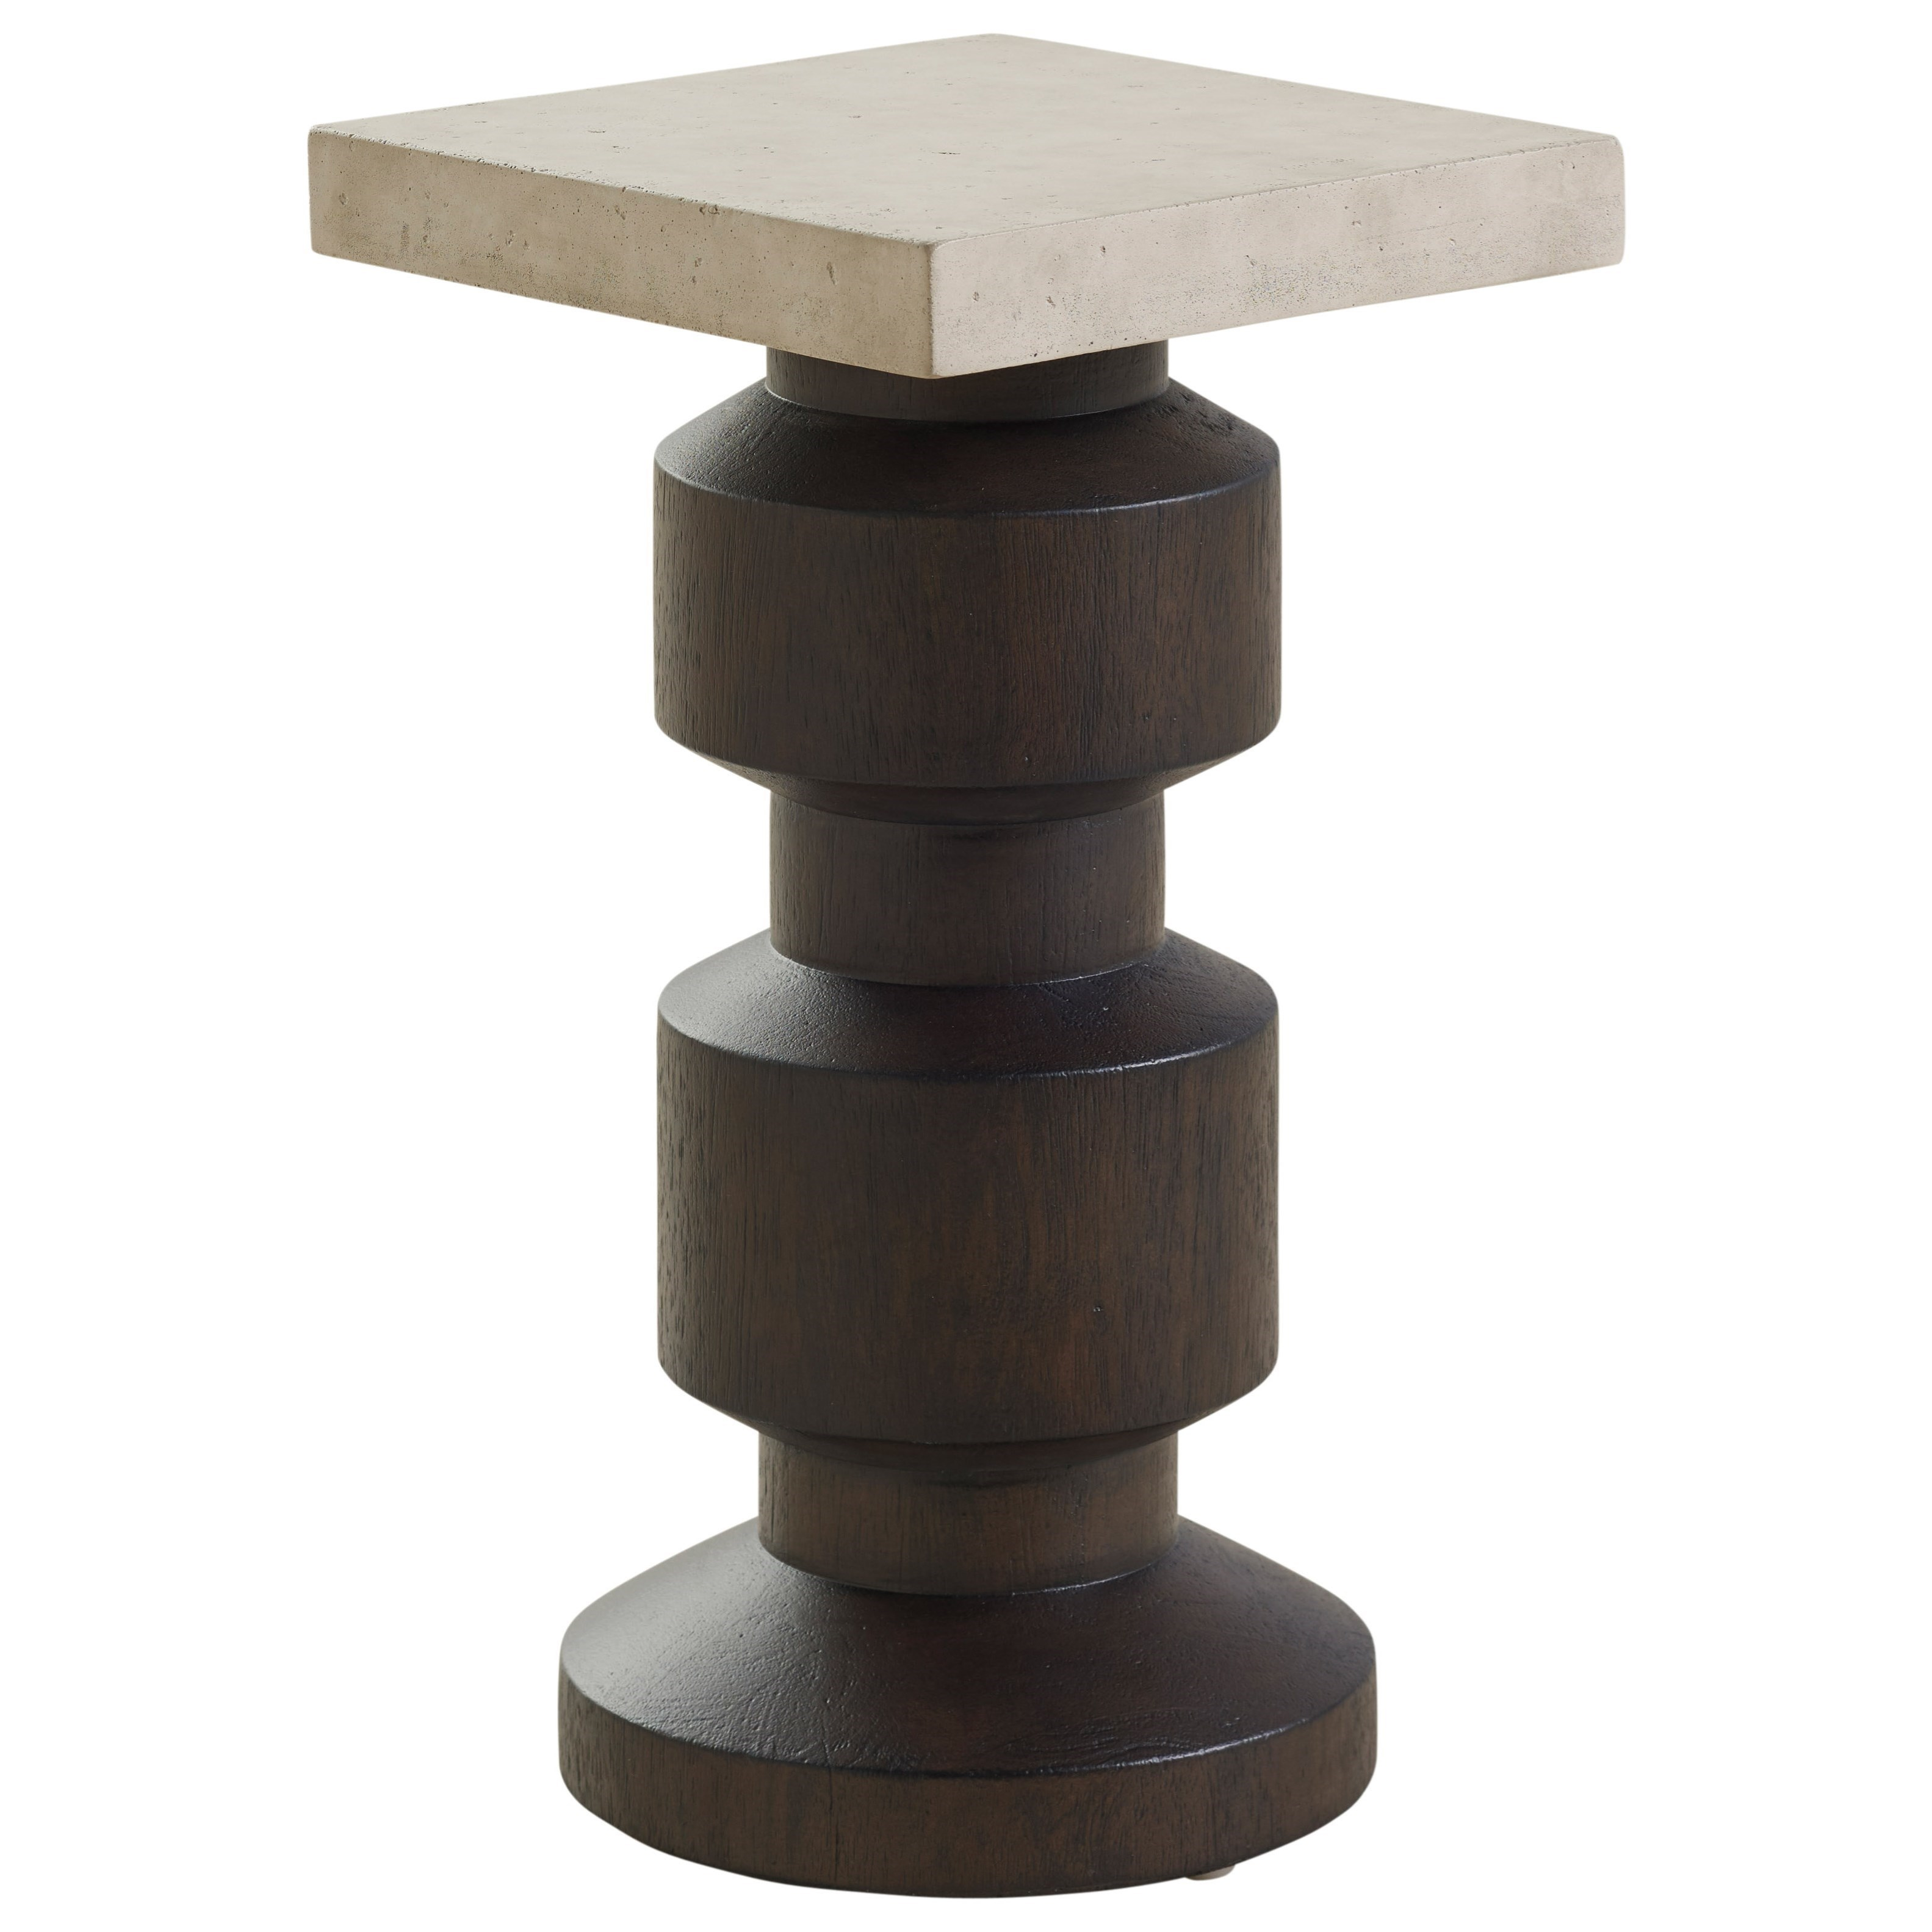 Malibu Calamigos Accent Table by Barclay Butera at Baer's Furniture